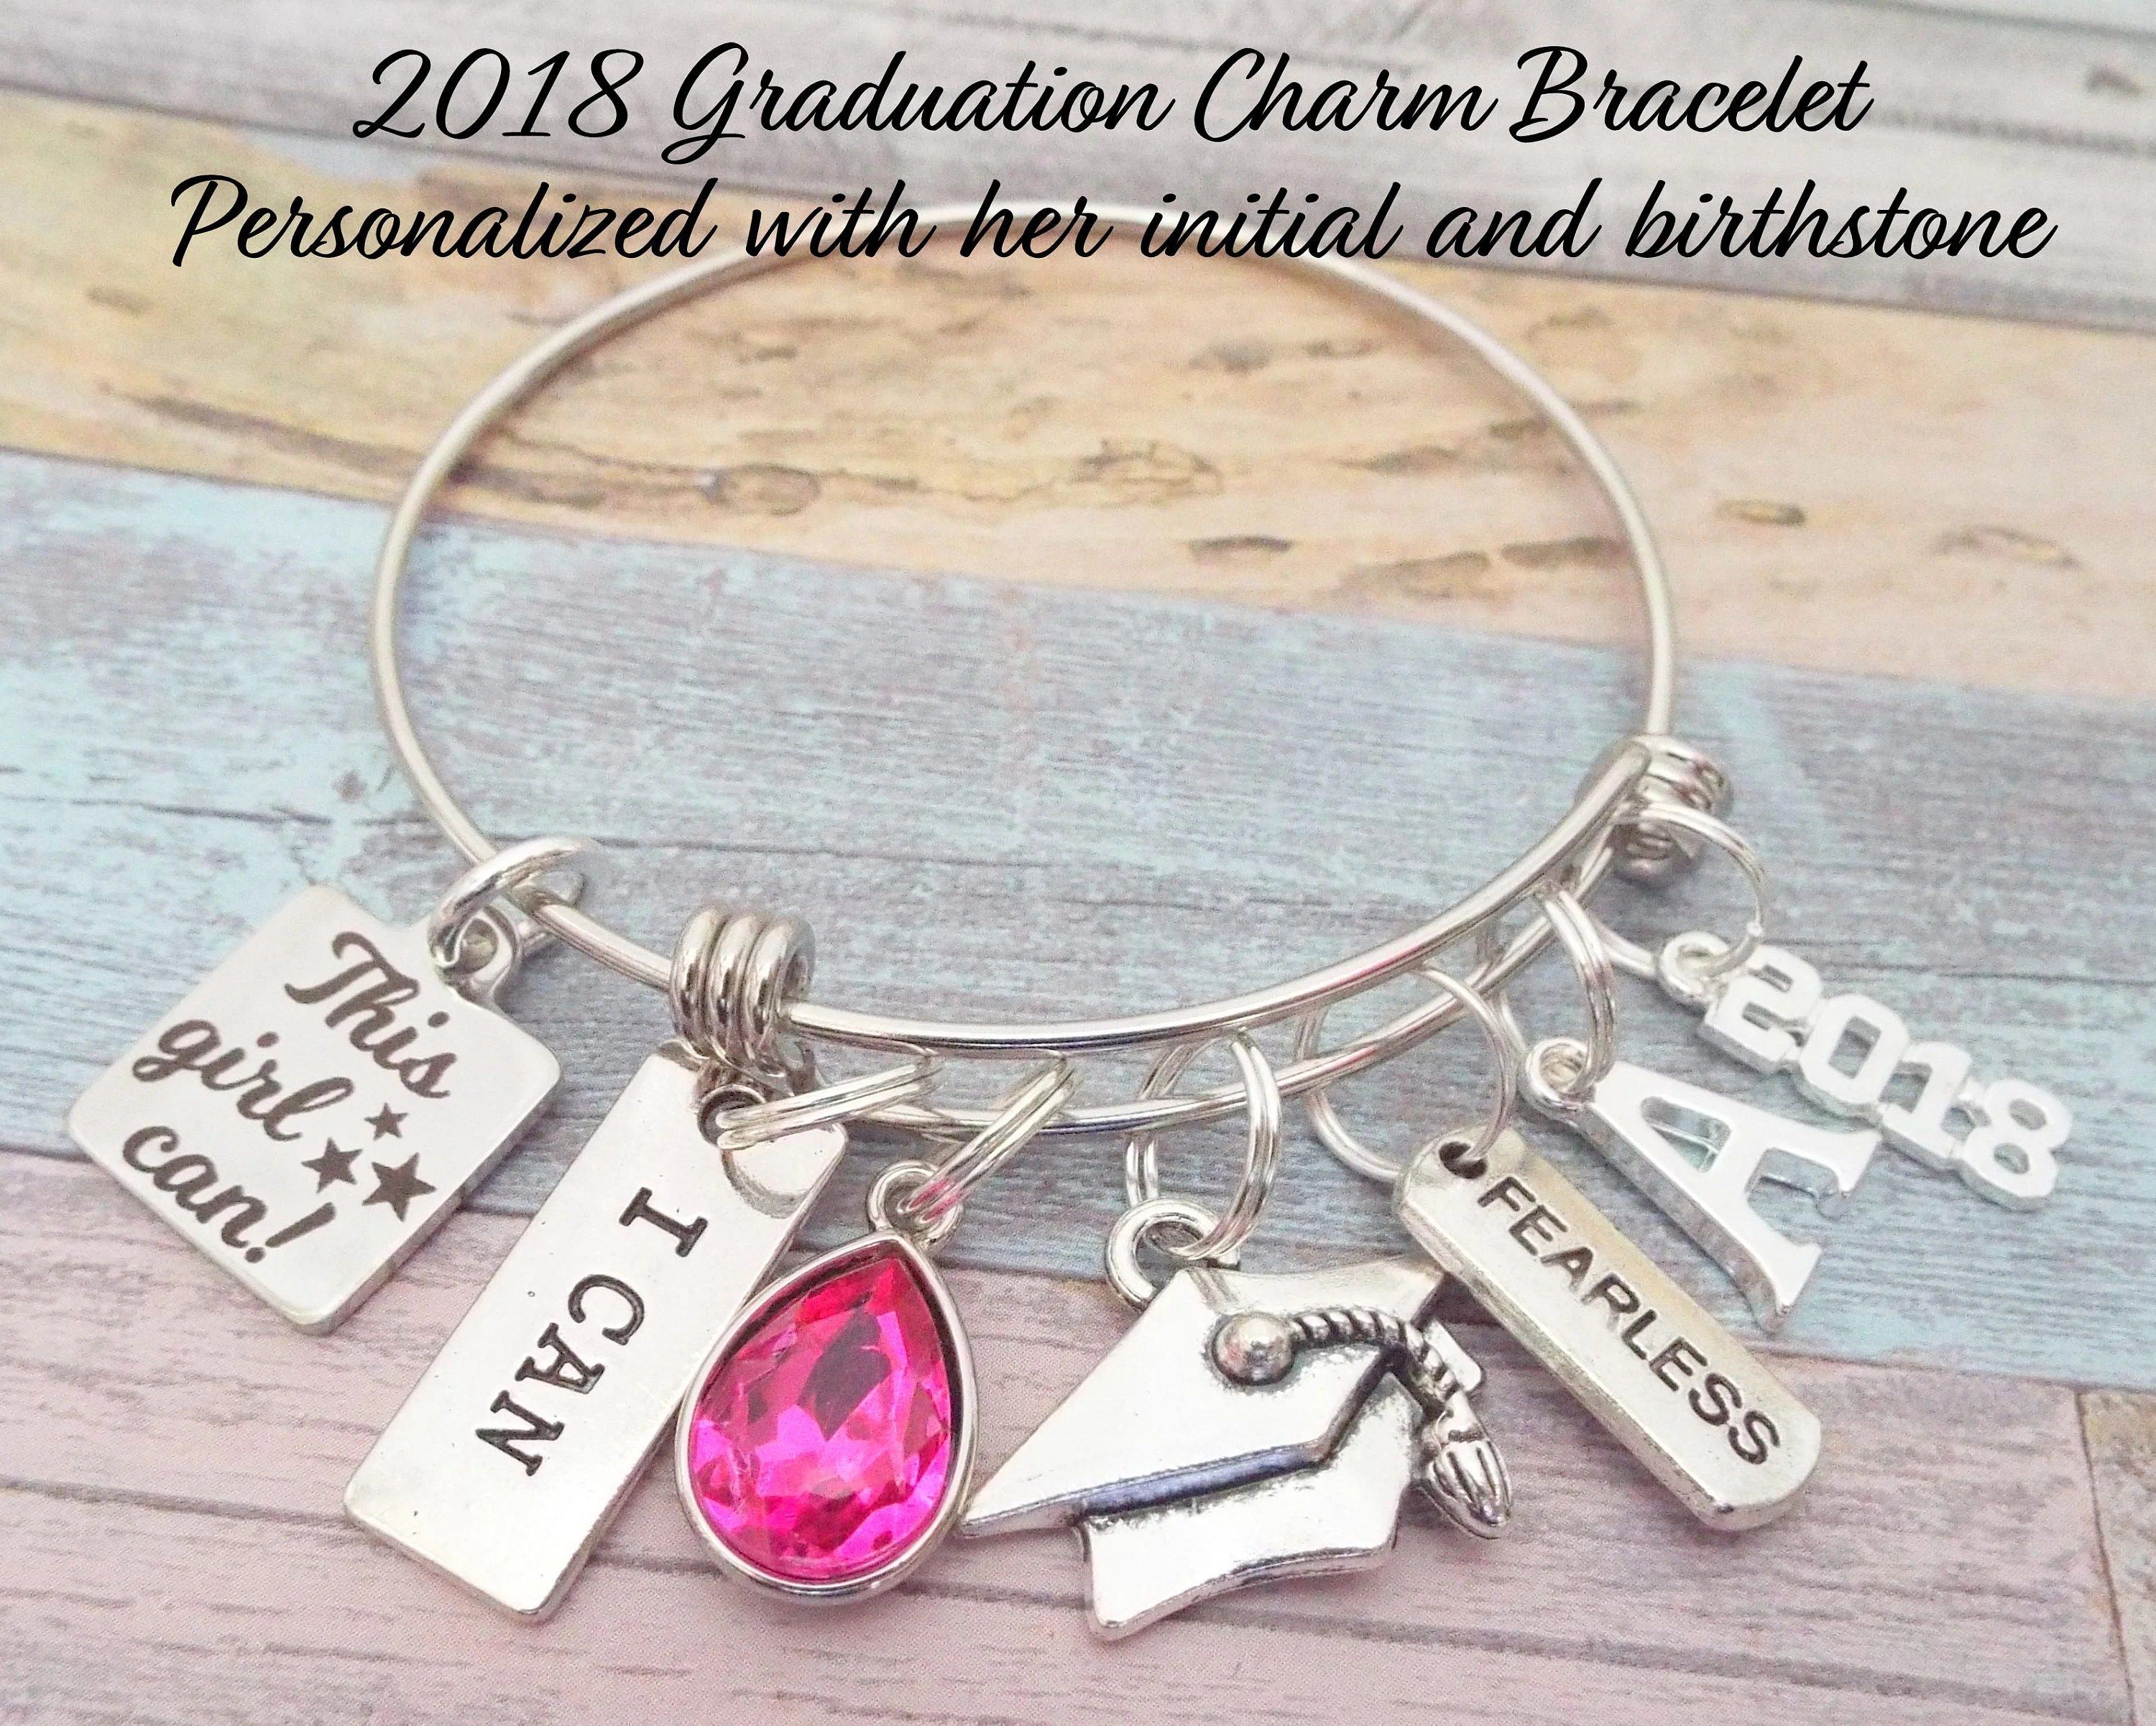 Splendid Girl Graduation Graduation School Graduation College Graduate Personalized Gift Graduation Gift Girl Graduation Graduation Girl Graduation Gift gifts College Graduation Gifts For Her